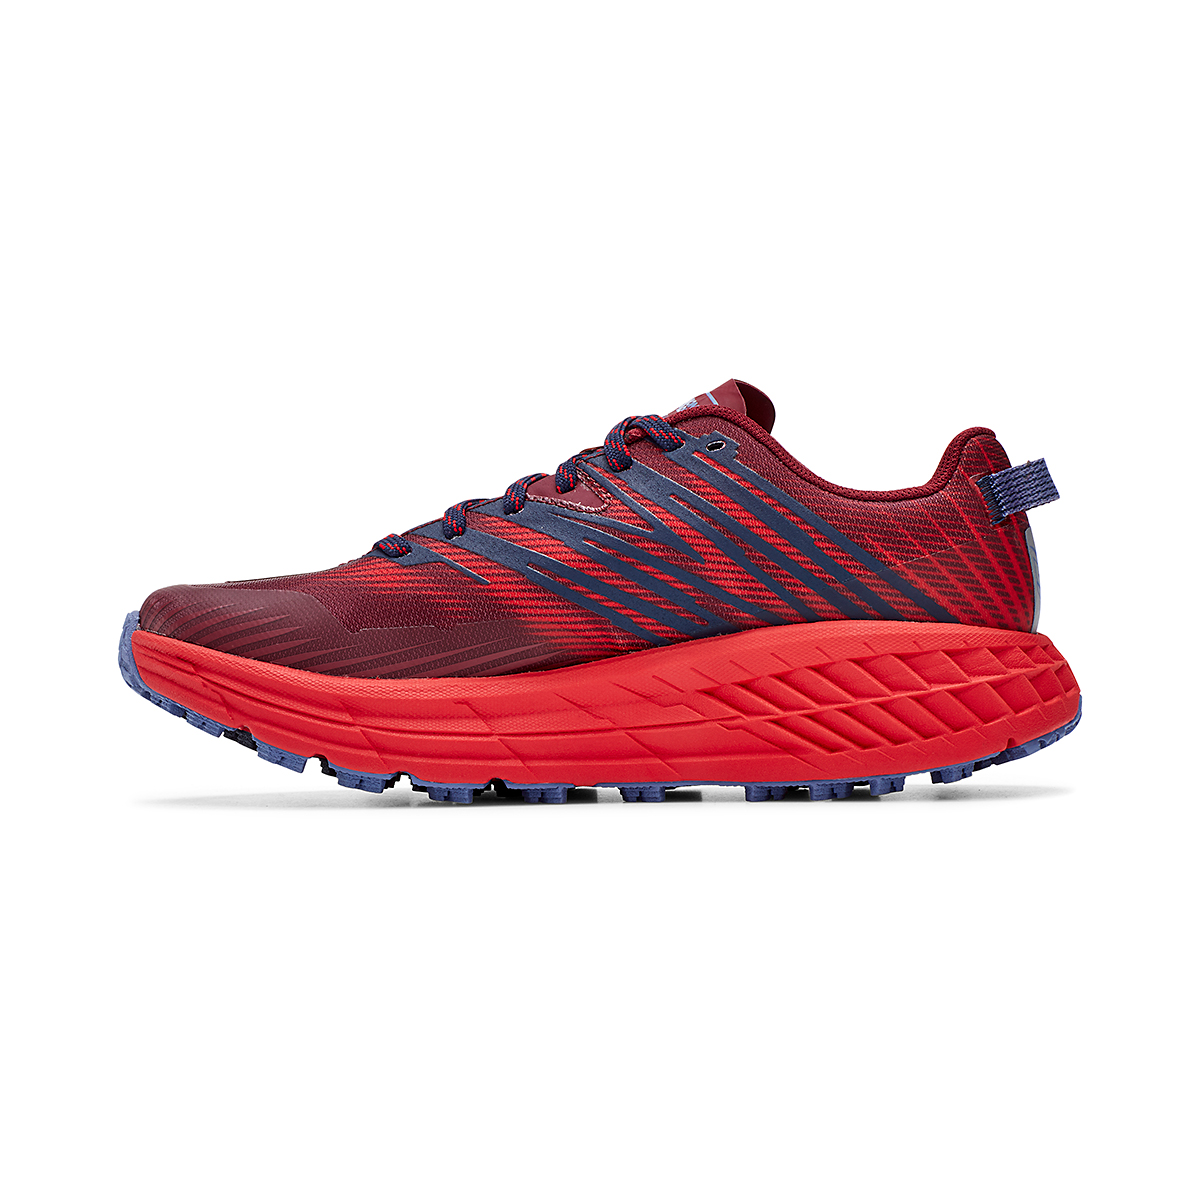 Women's Hoka One One Speedgoat 4 Trail Running Shoe - Color: Cordovan/High Risk Red - Size: 5 - Width: Regular, Cordovan/High Risk Red, large, image 2